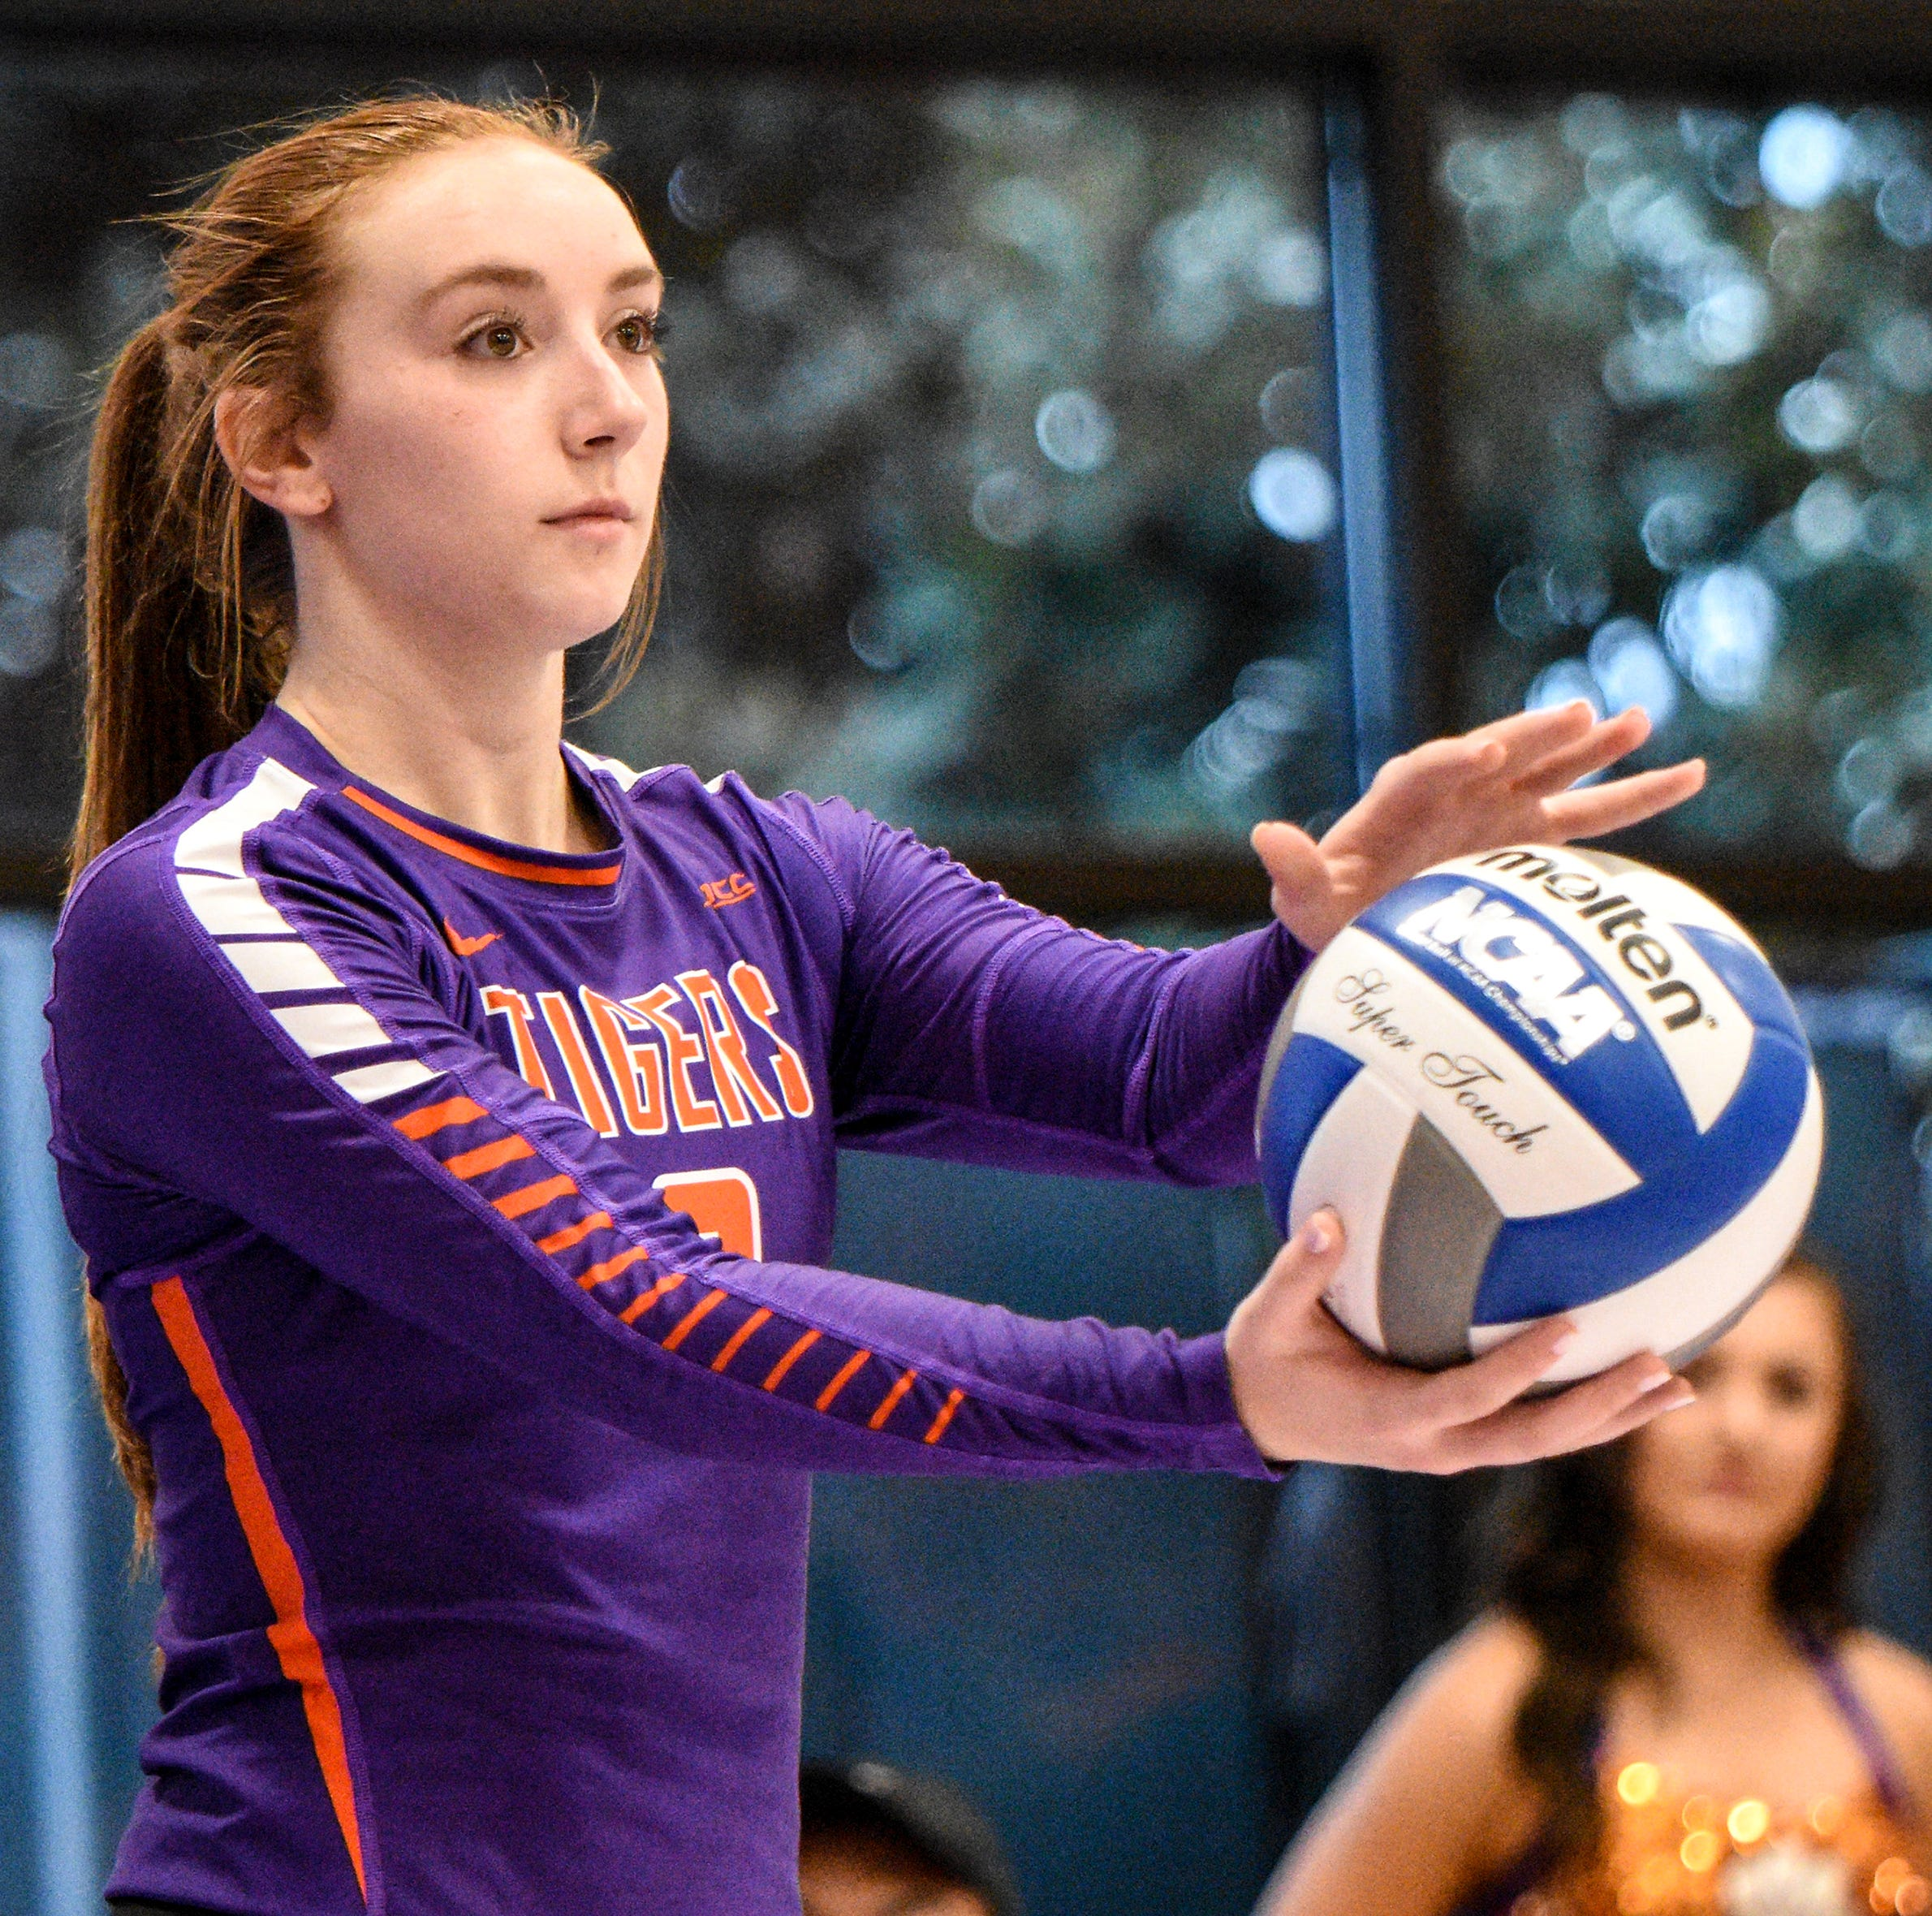 Former Hanna volleyball standout Gabby Easton finds redemption in Team USA tryout